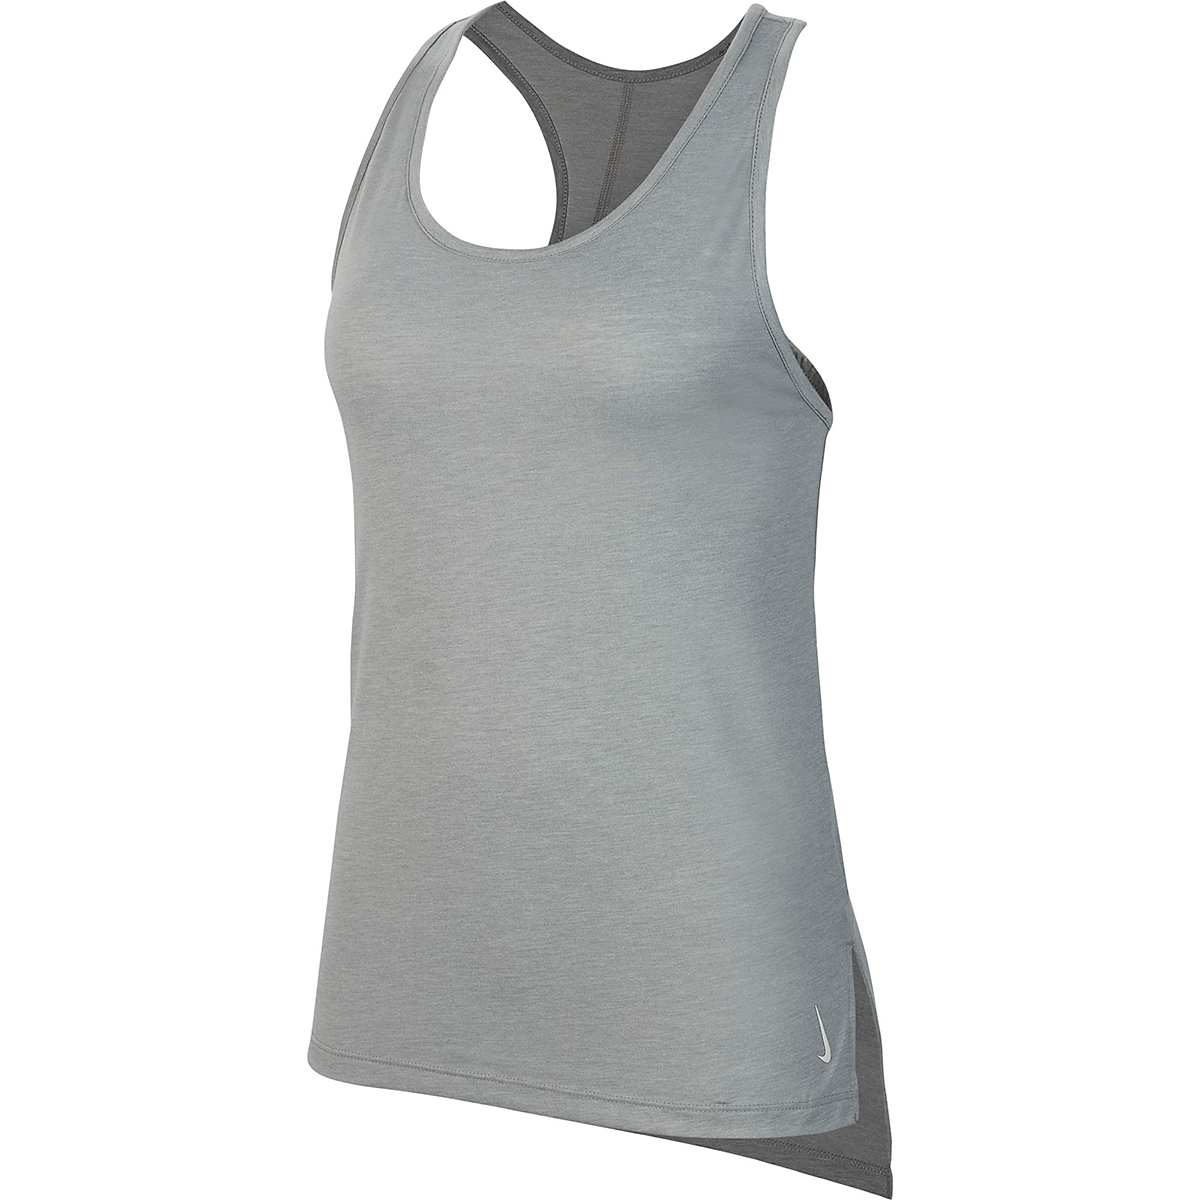 Women's Nike Yoga Layer Tank - Color: Particle Grey/Heather/Platinim Tint - Size: XS, Particle Grey/Heather/Platinim Tint, large, image 3